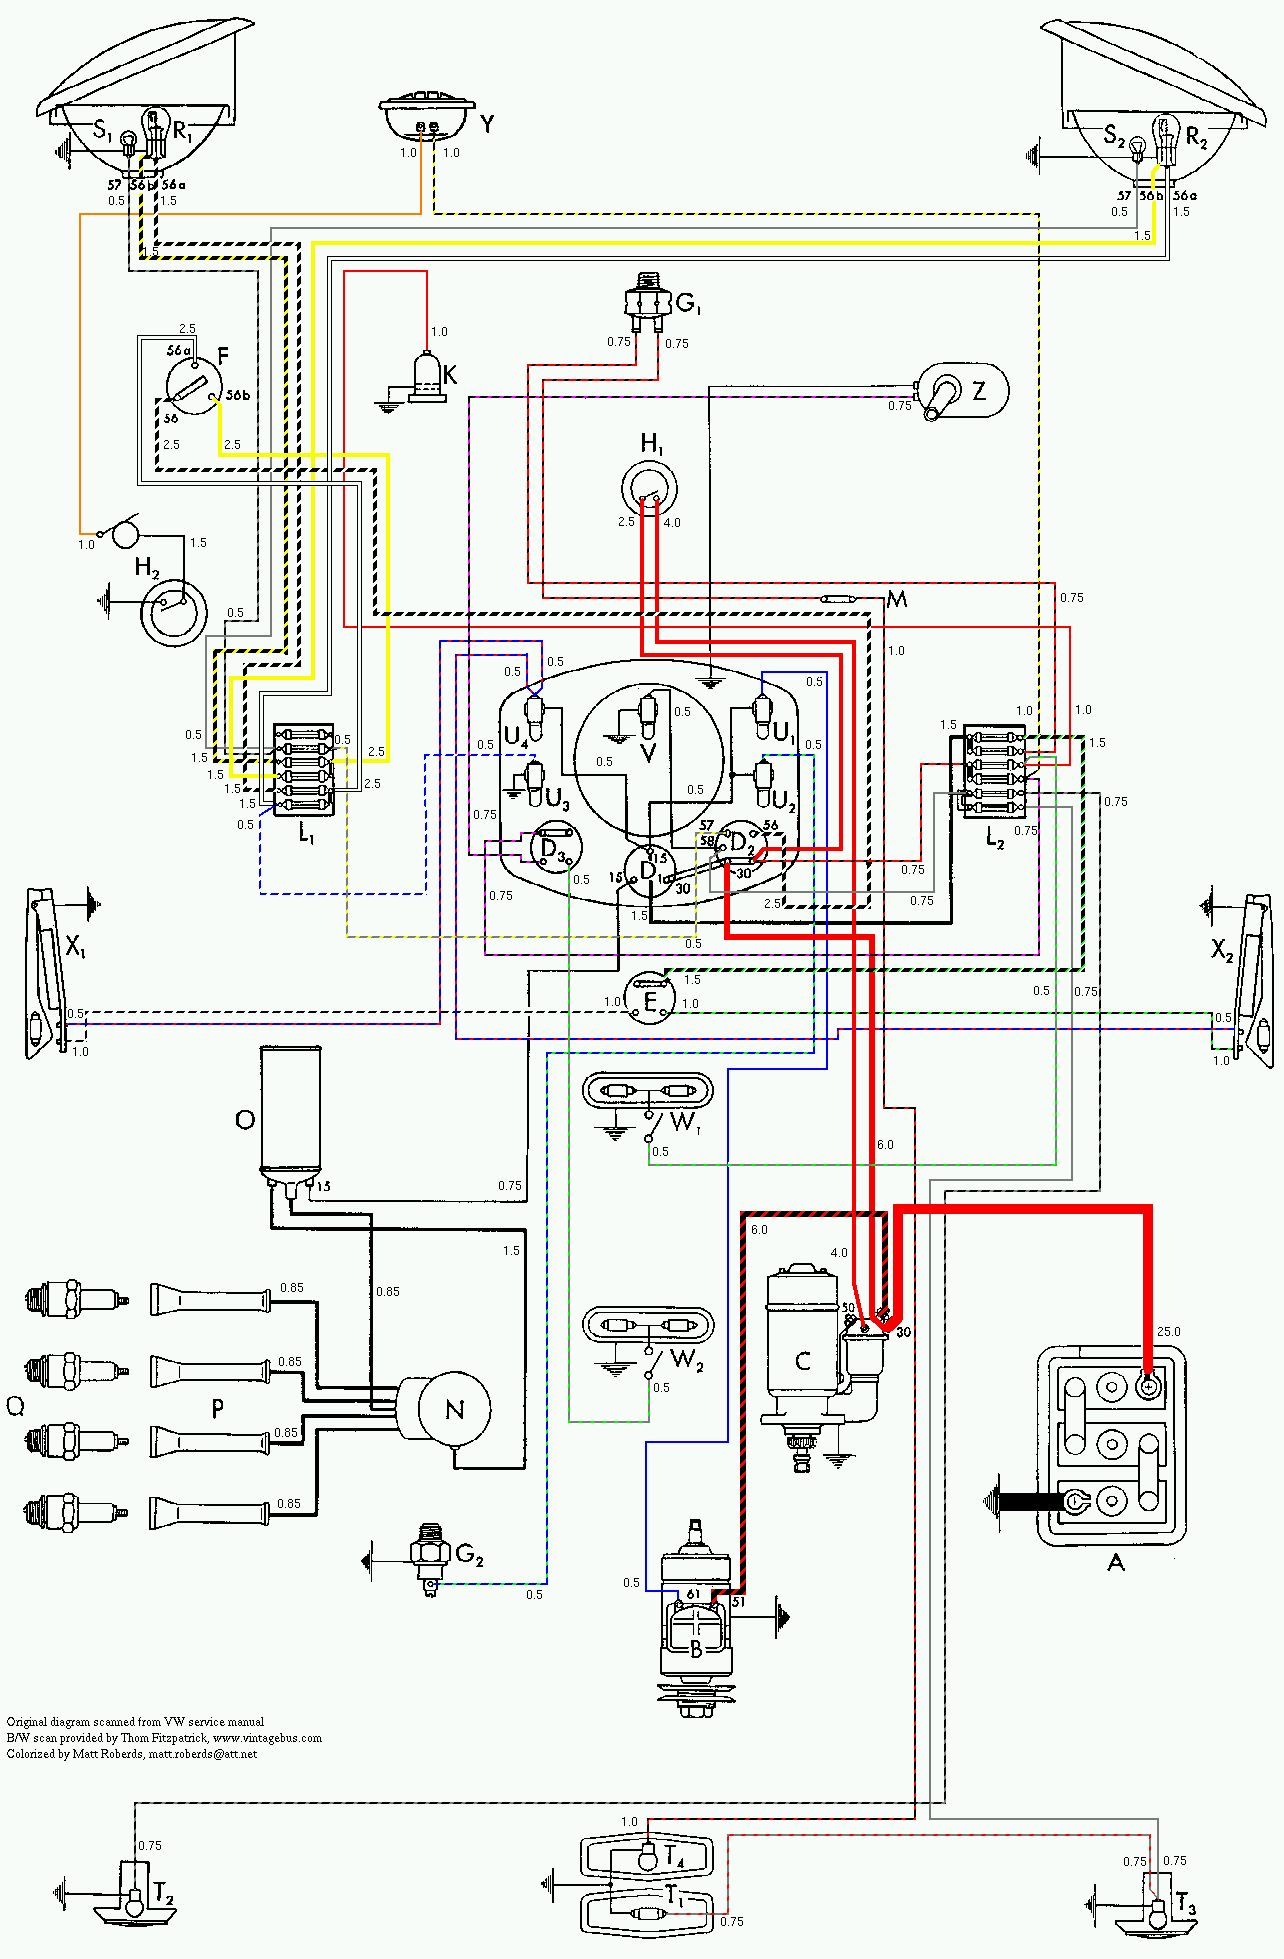 64 Vw Bug Wiring Diagram Library 68 Beetle Flasher Free Download 1950 To 1953 1956 Volkswagen